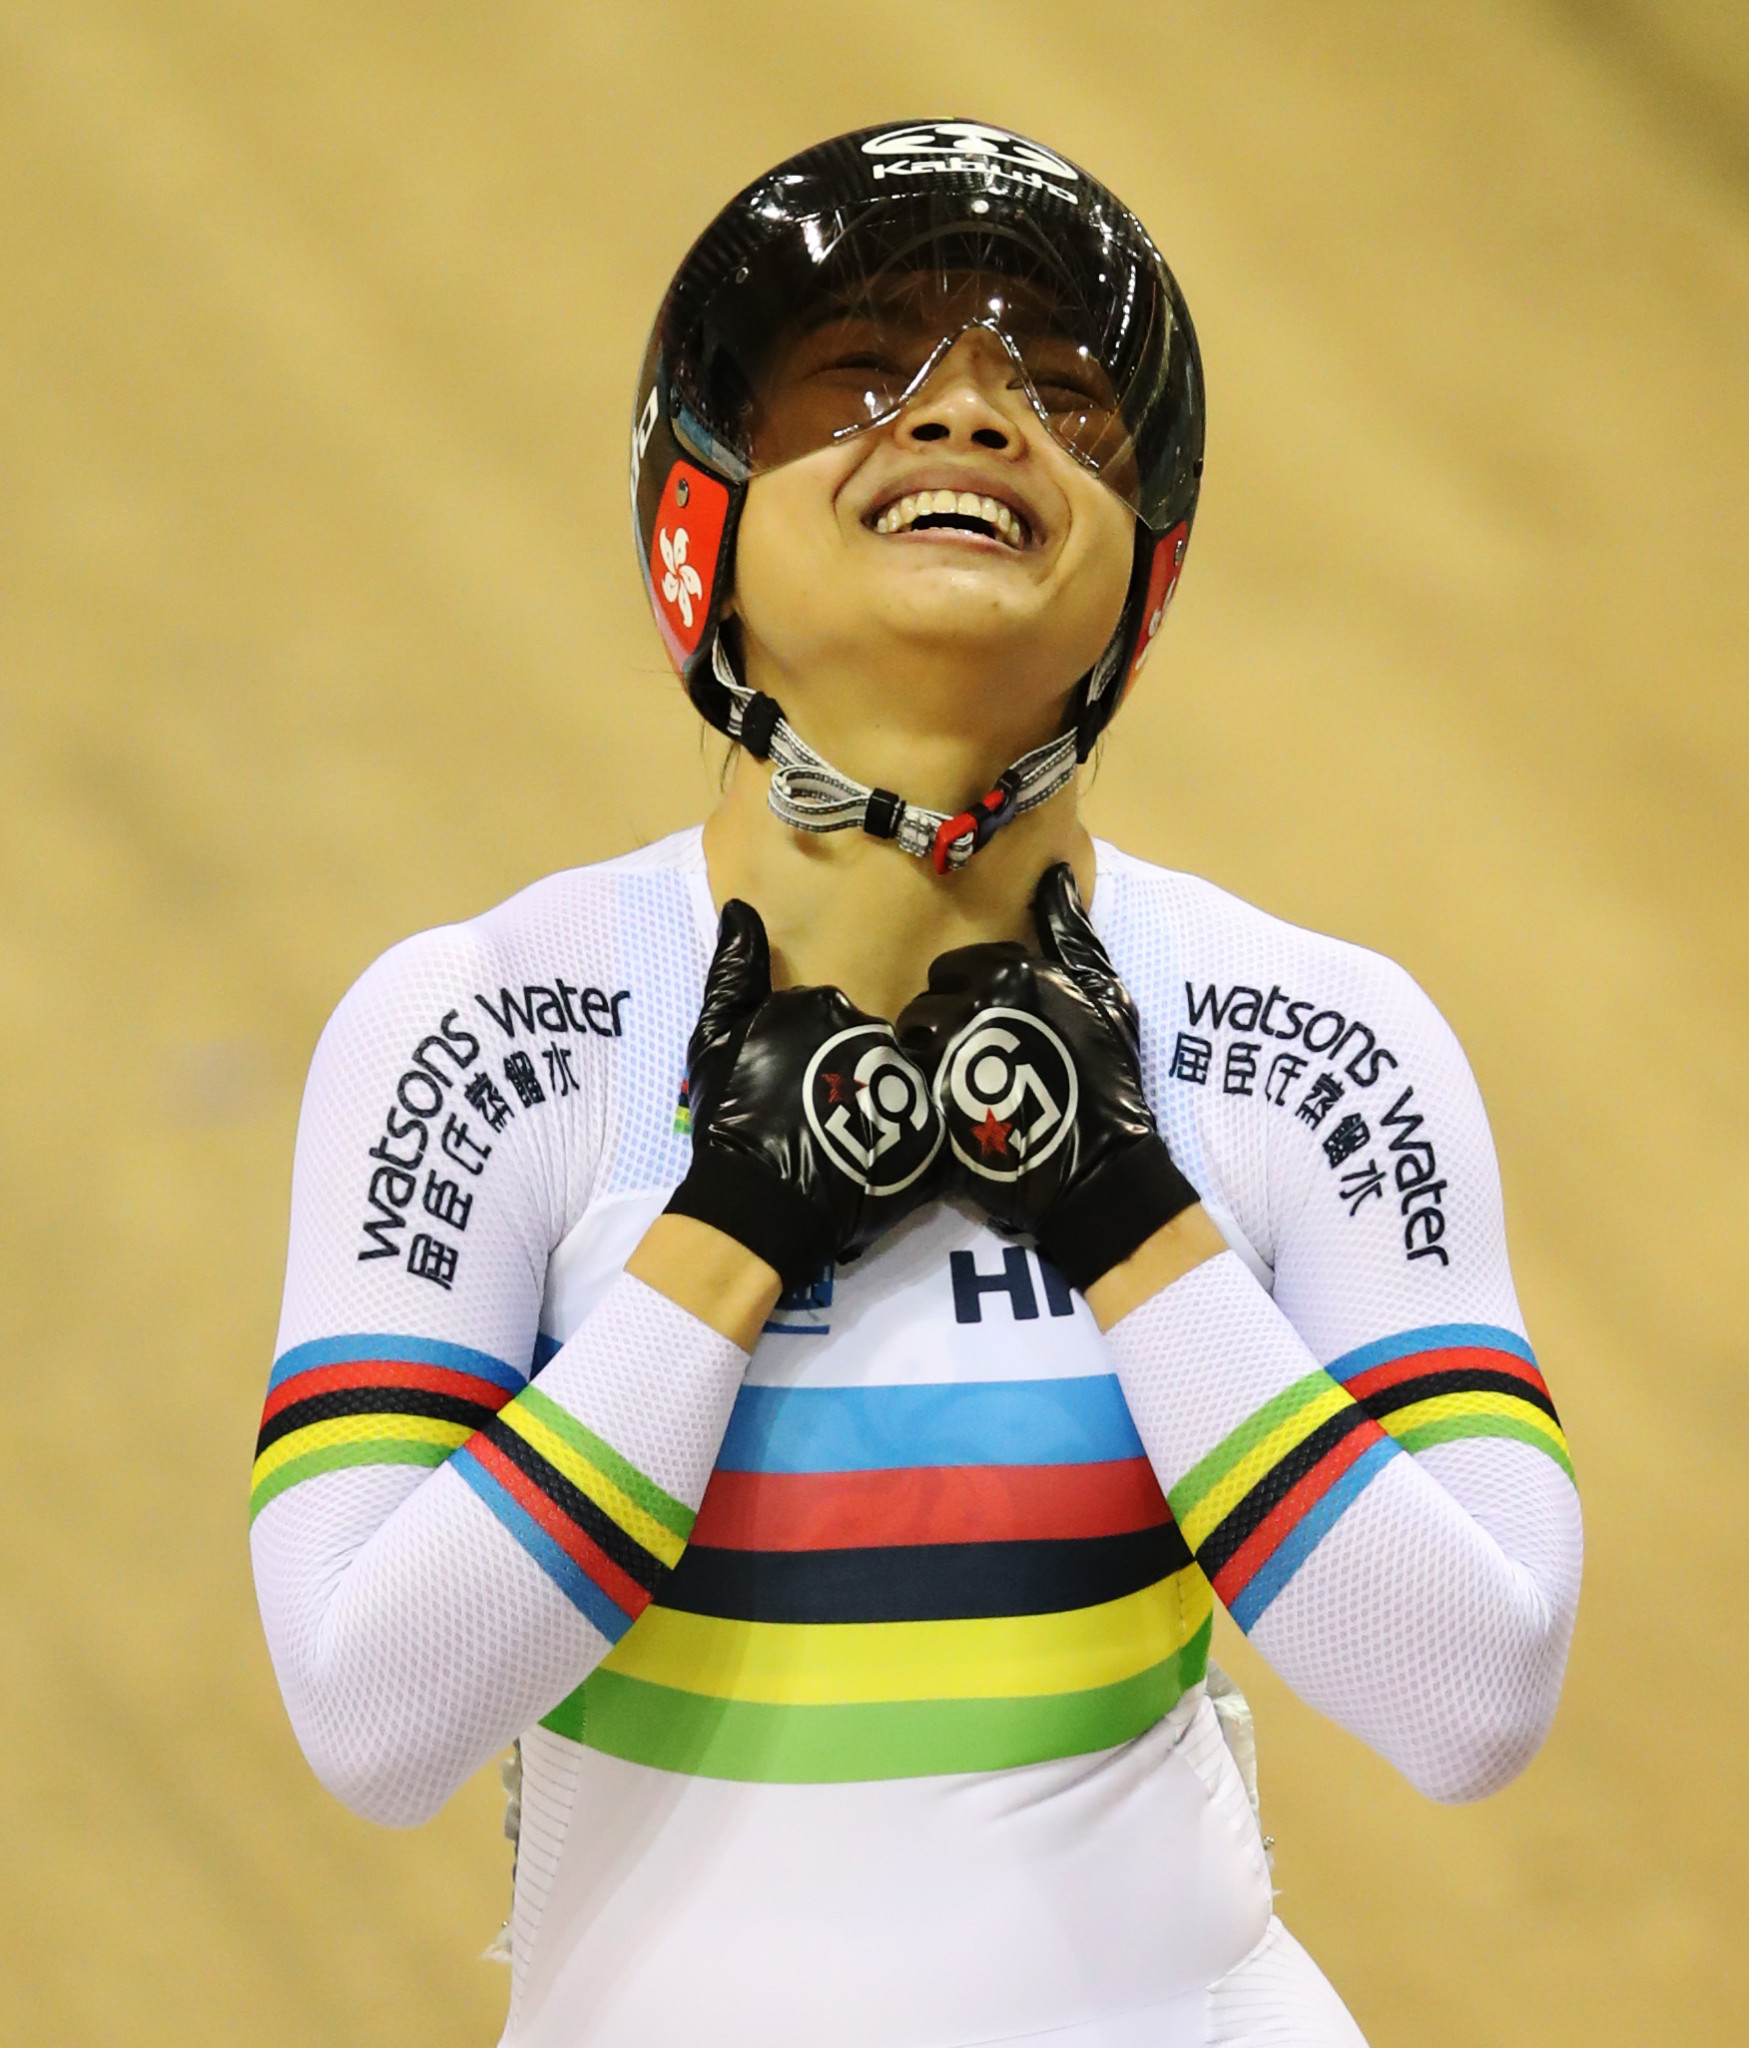 Home hero triumphs at UCI Track World Cup in Hong Kong